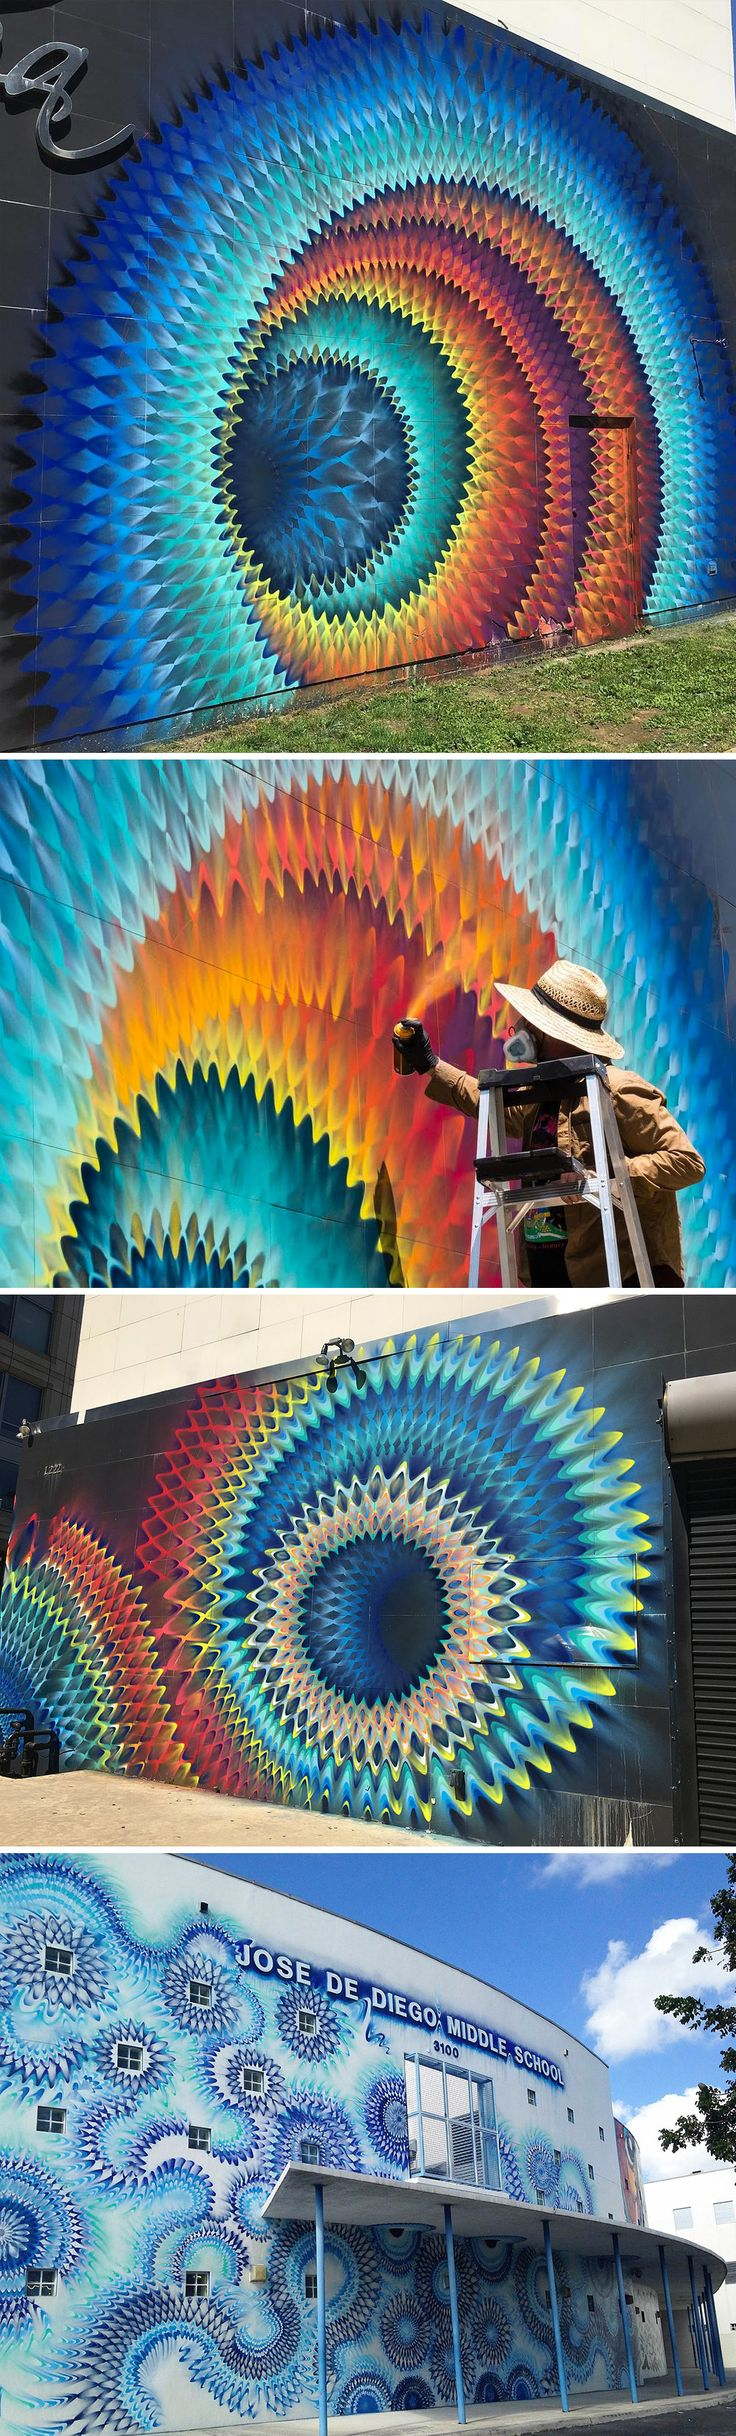 Rippled Portals of Color Created with Spray